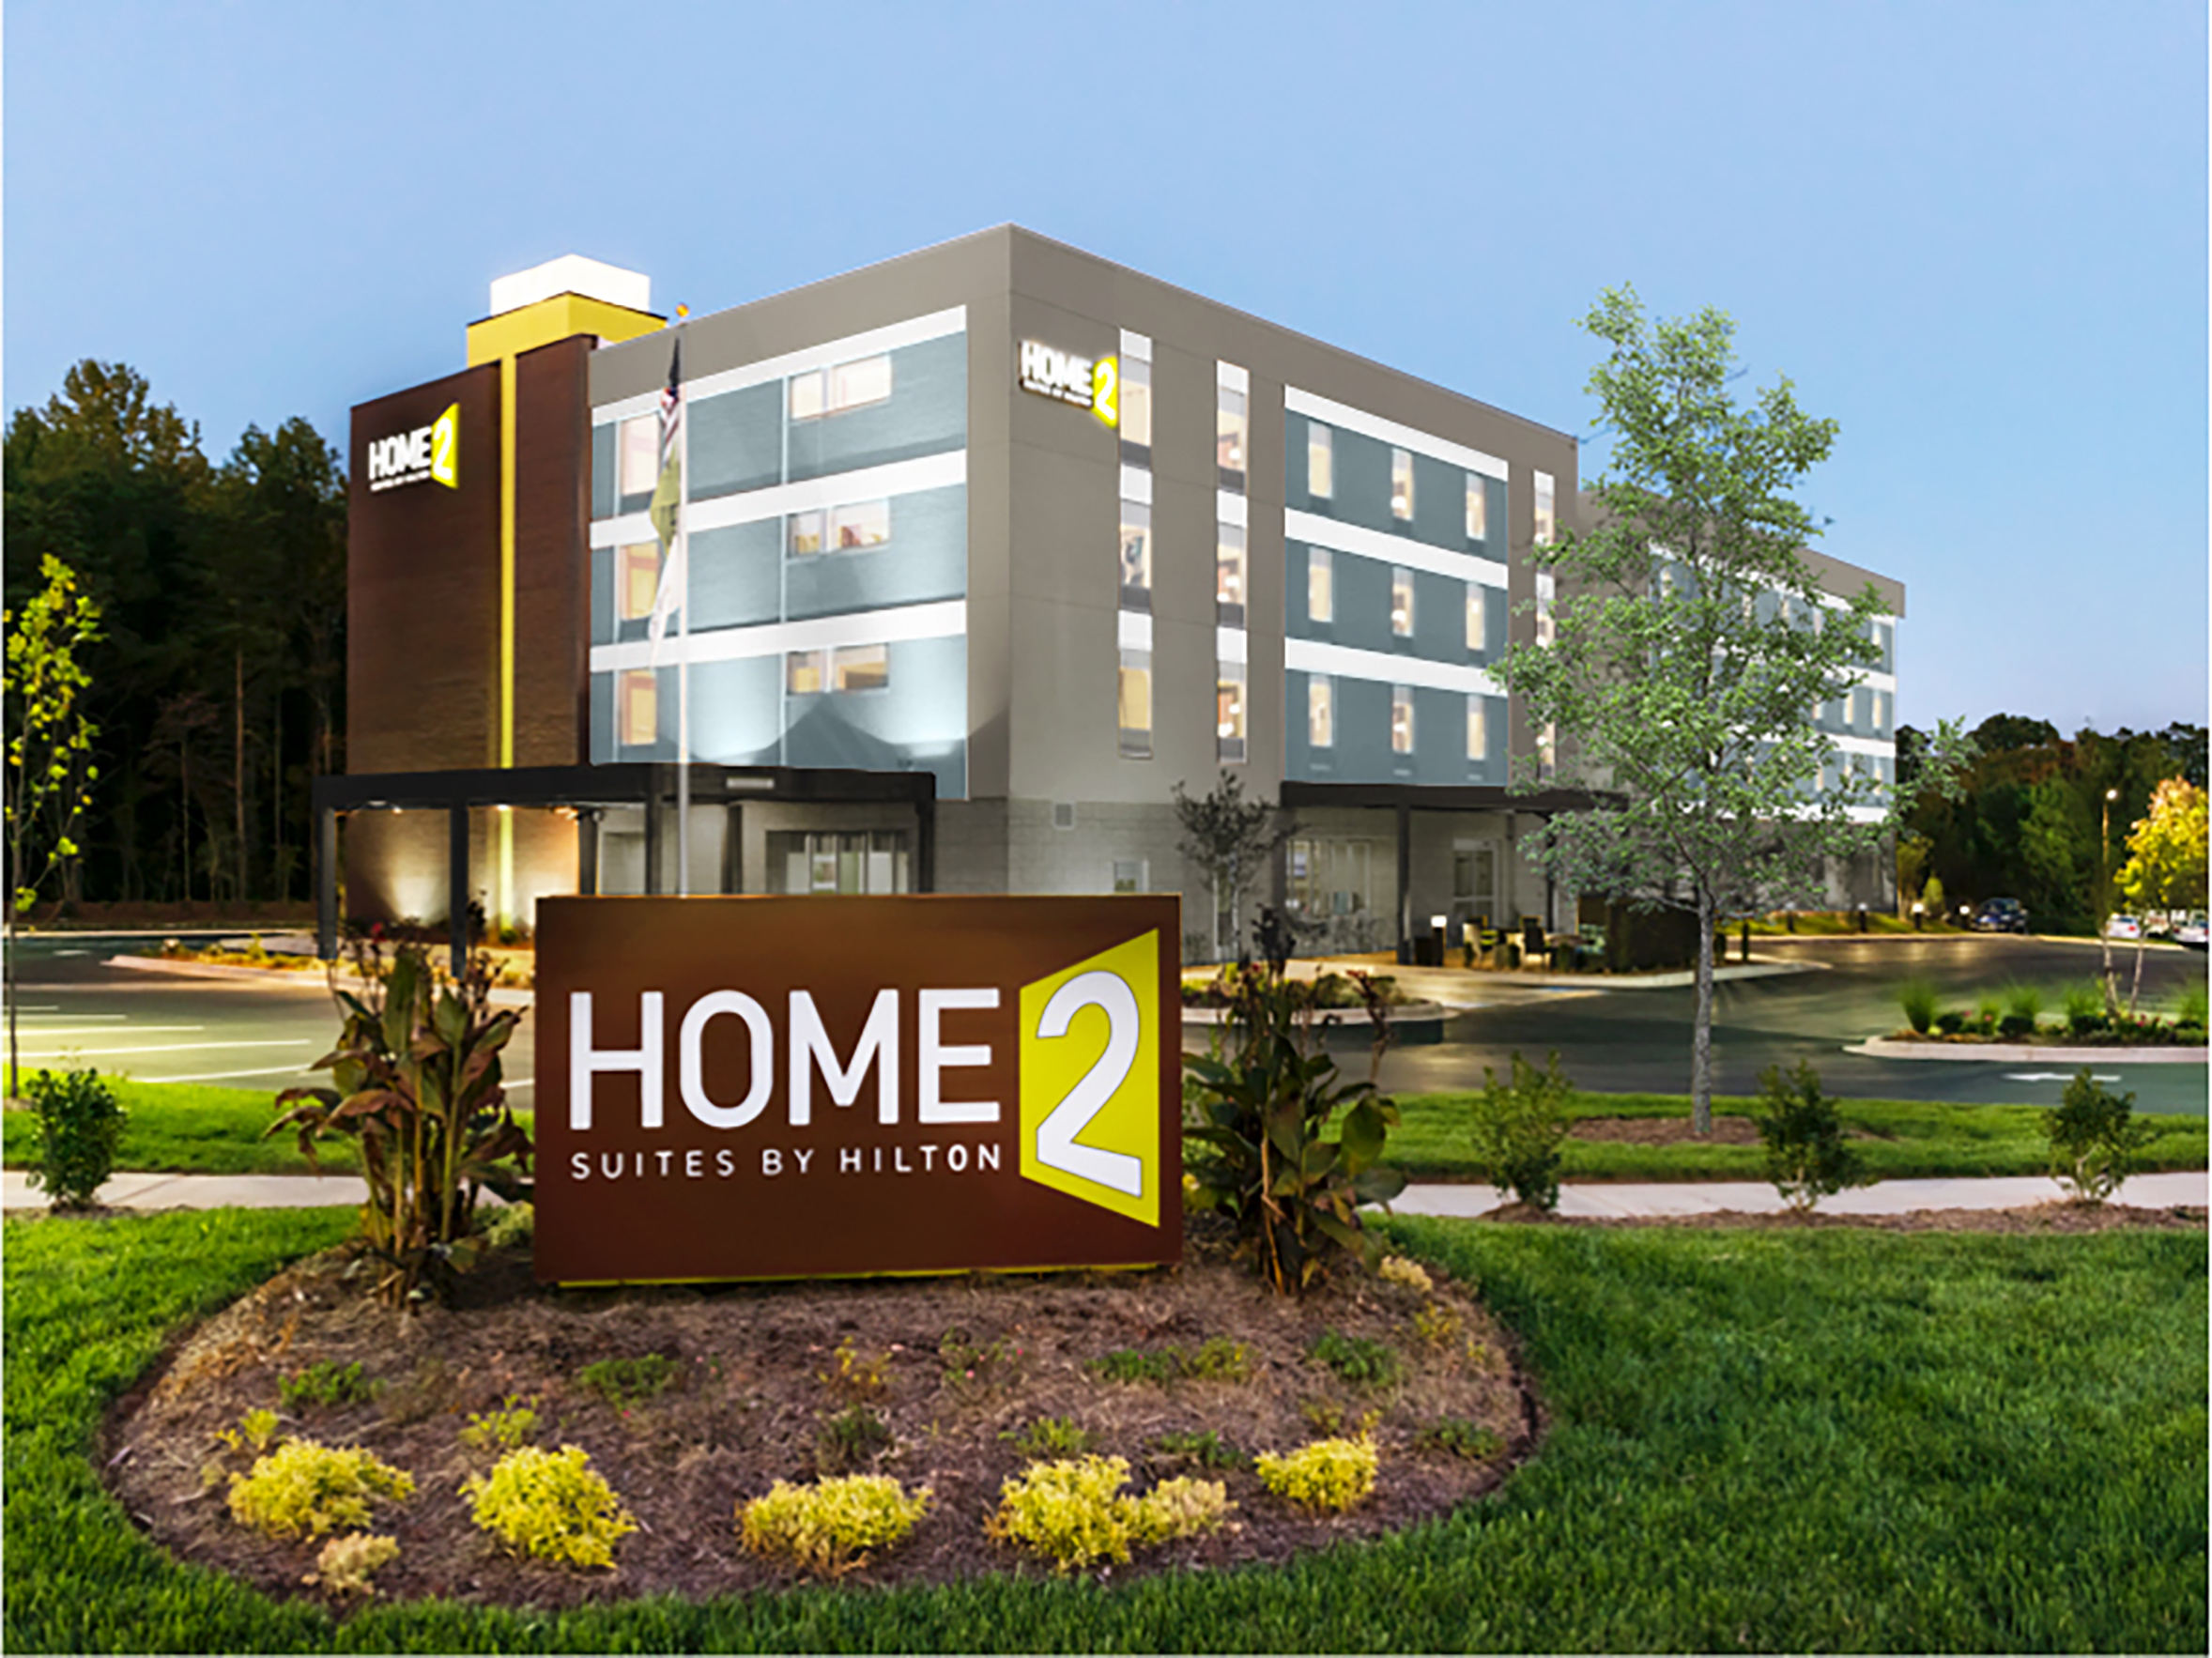 Home2 suites brings a modern extended stay option to the for Home two suites